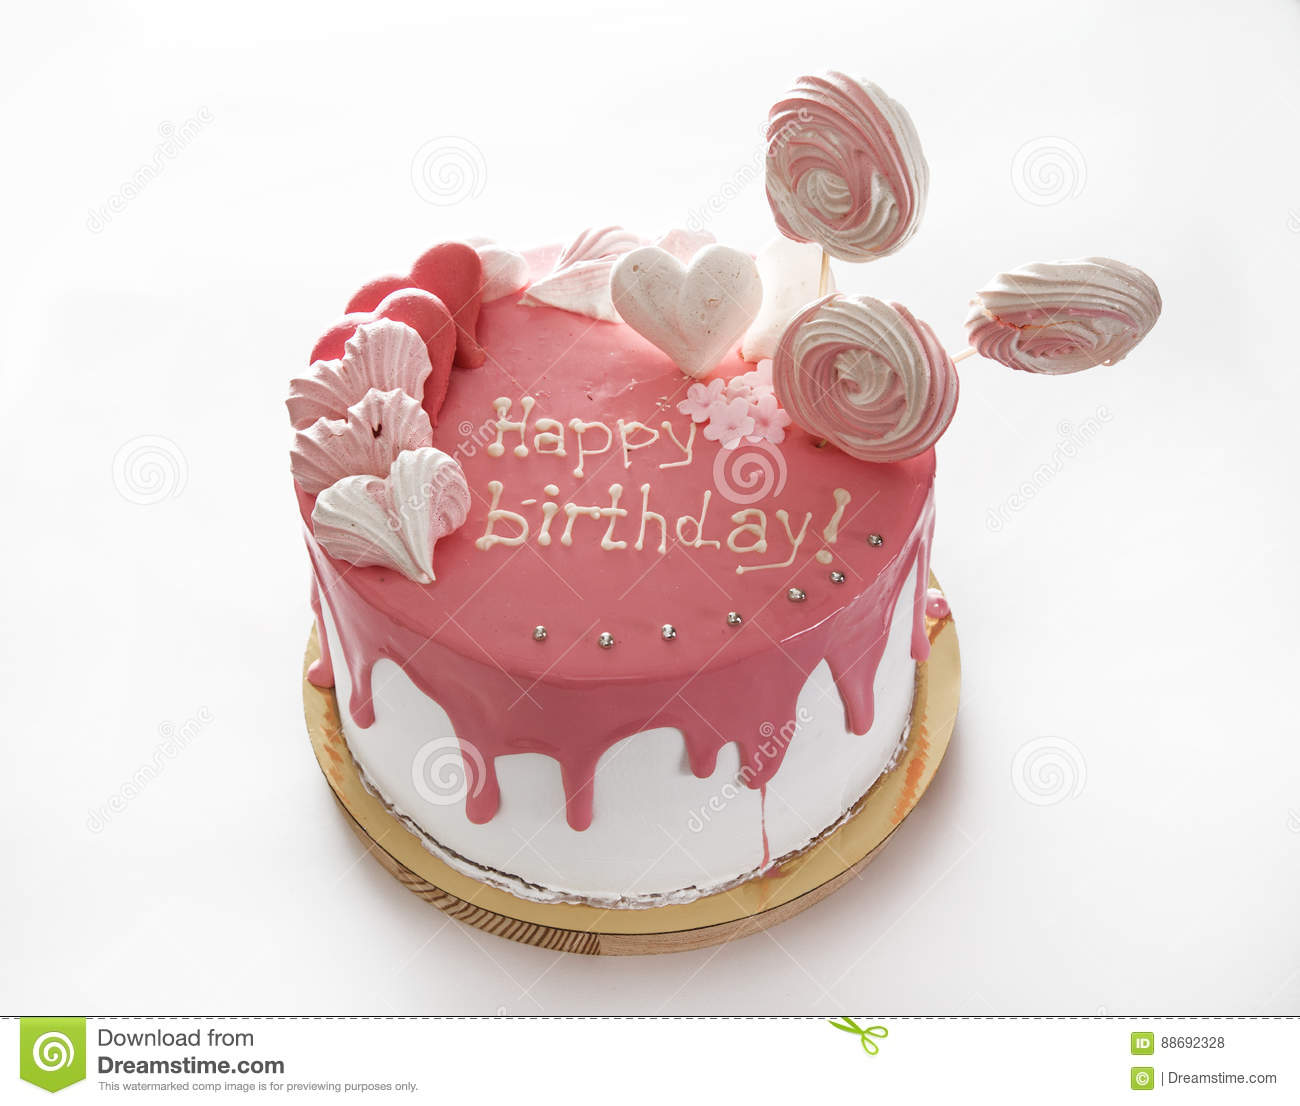 Cake Happy Birthday Stock Photo Image Of Chocolate Biscuit 88692328